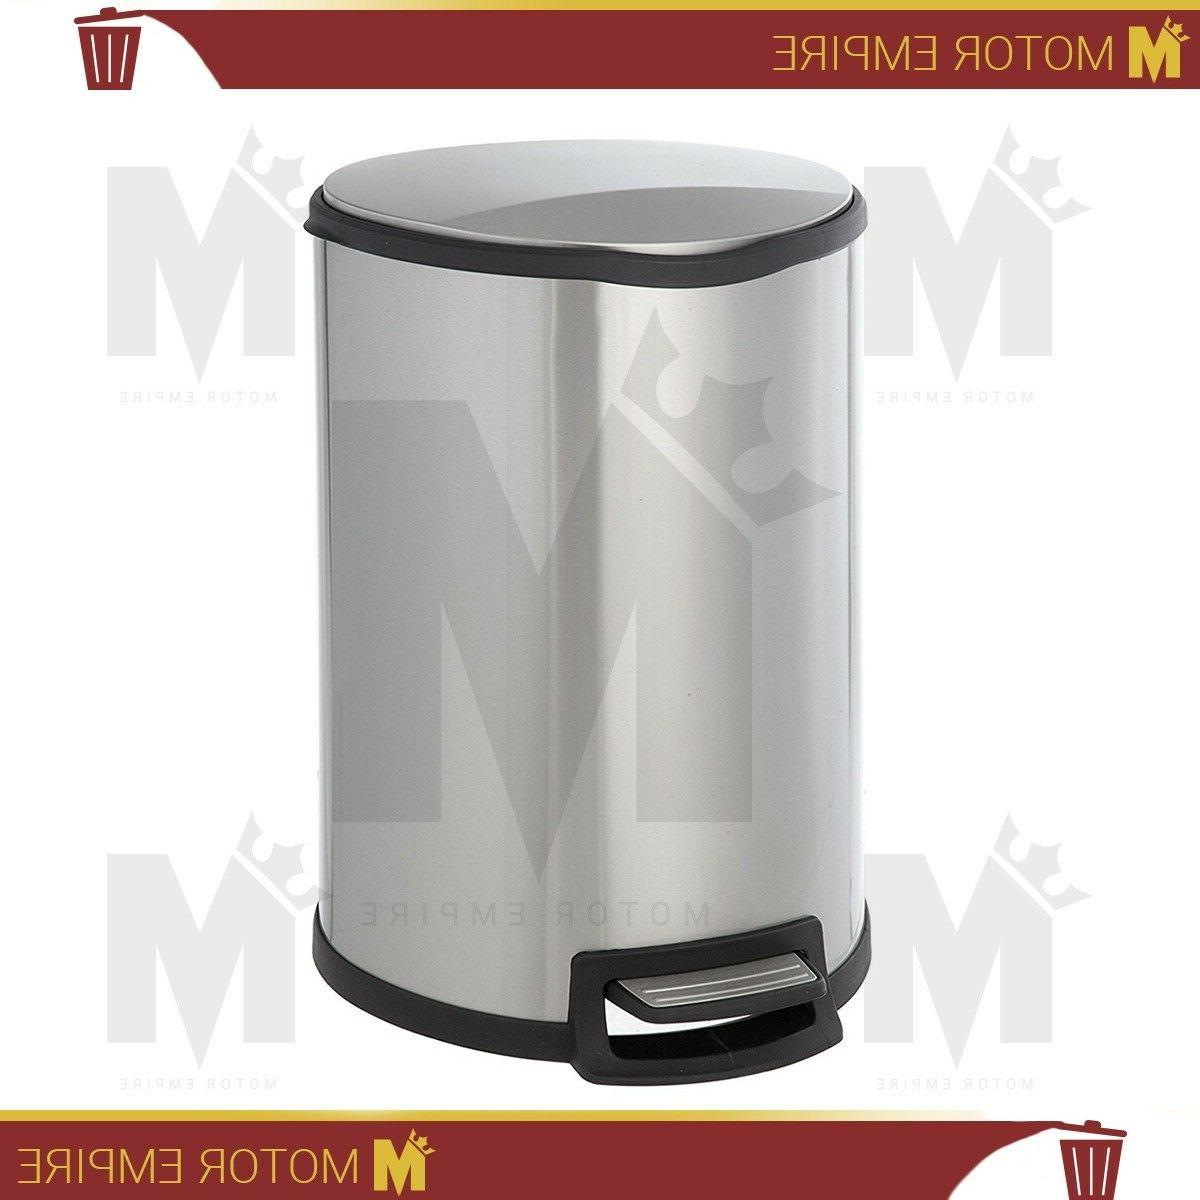 Home Zone Stainless Steel Kitchen Trash Can with Semi-Round Design and Step  Pedal | 45 Liter / 12 Gallon Storage with Removable Plastic Trash Bin ...